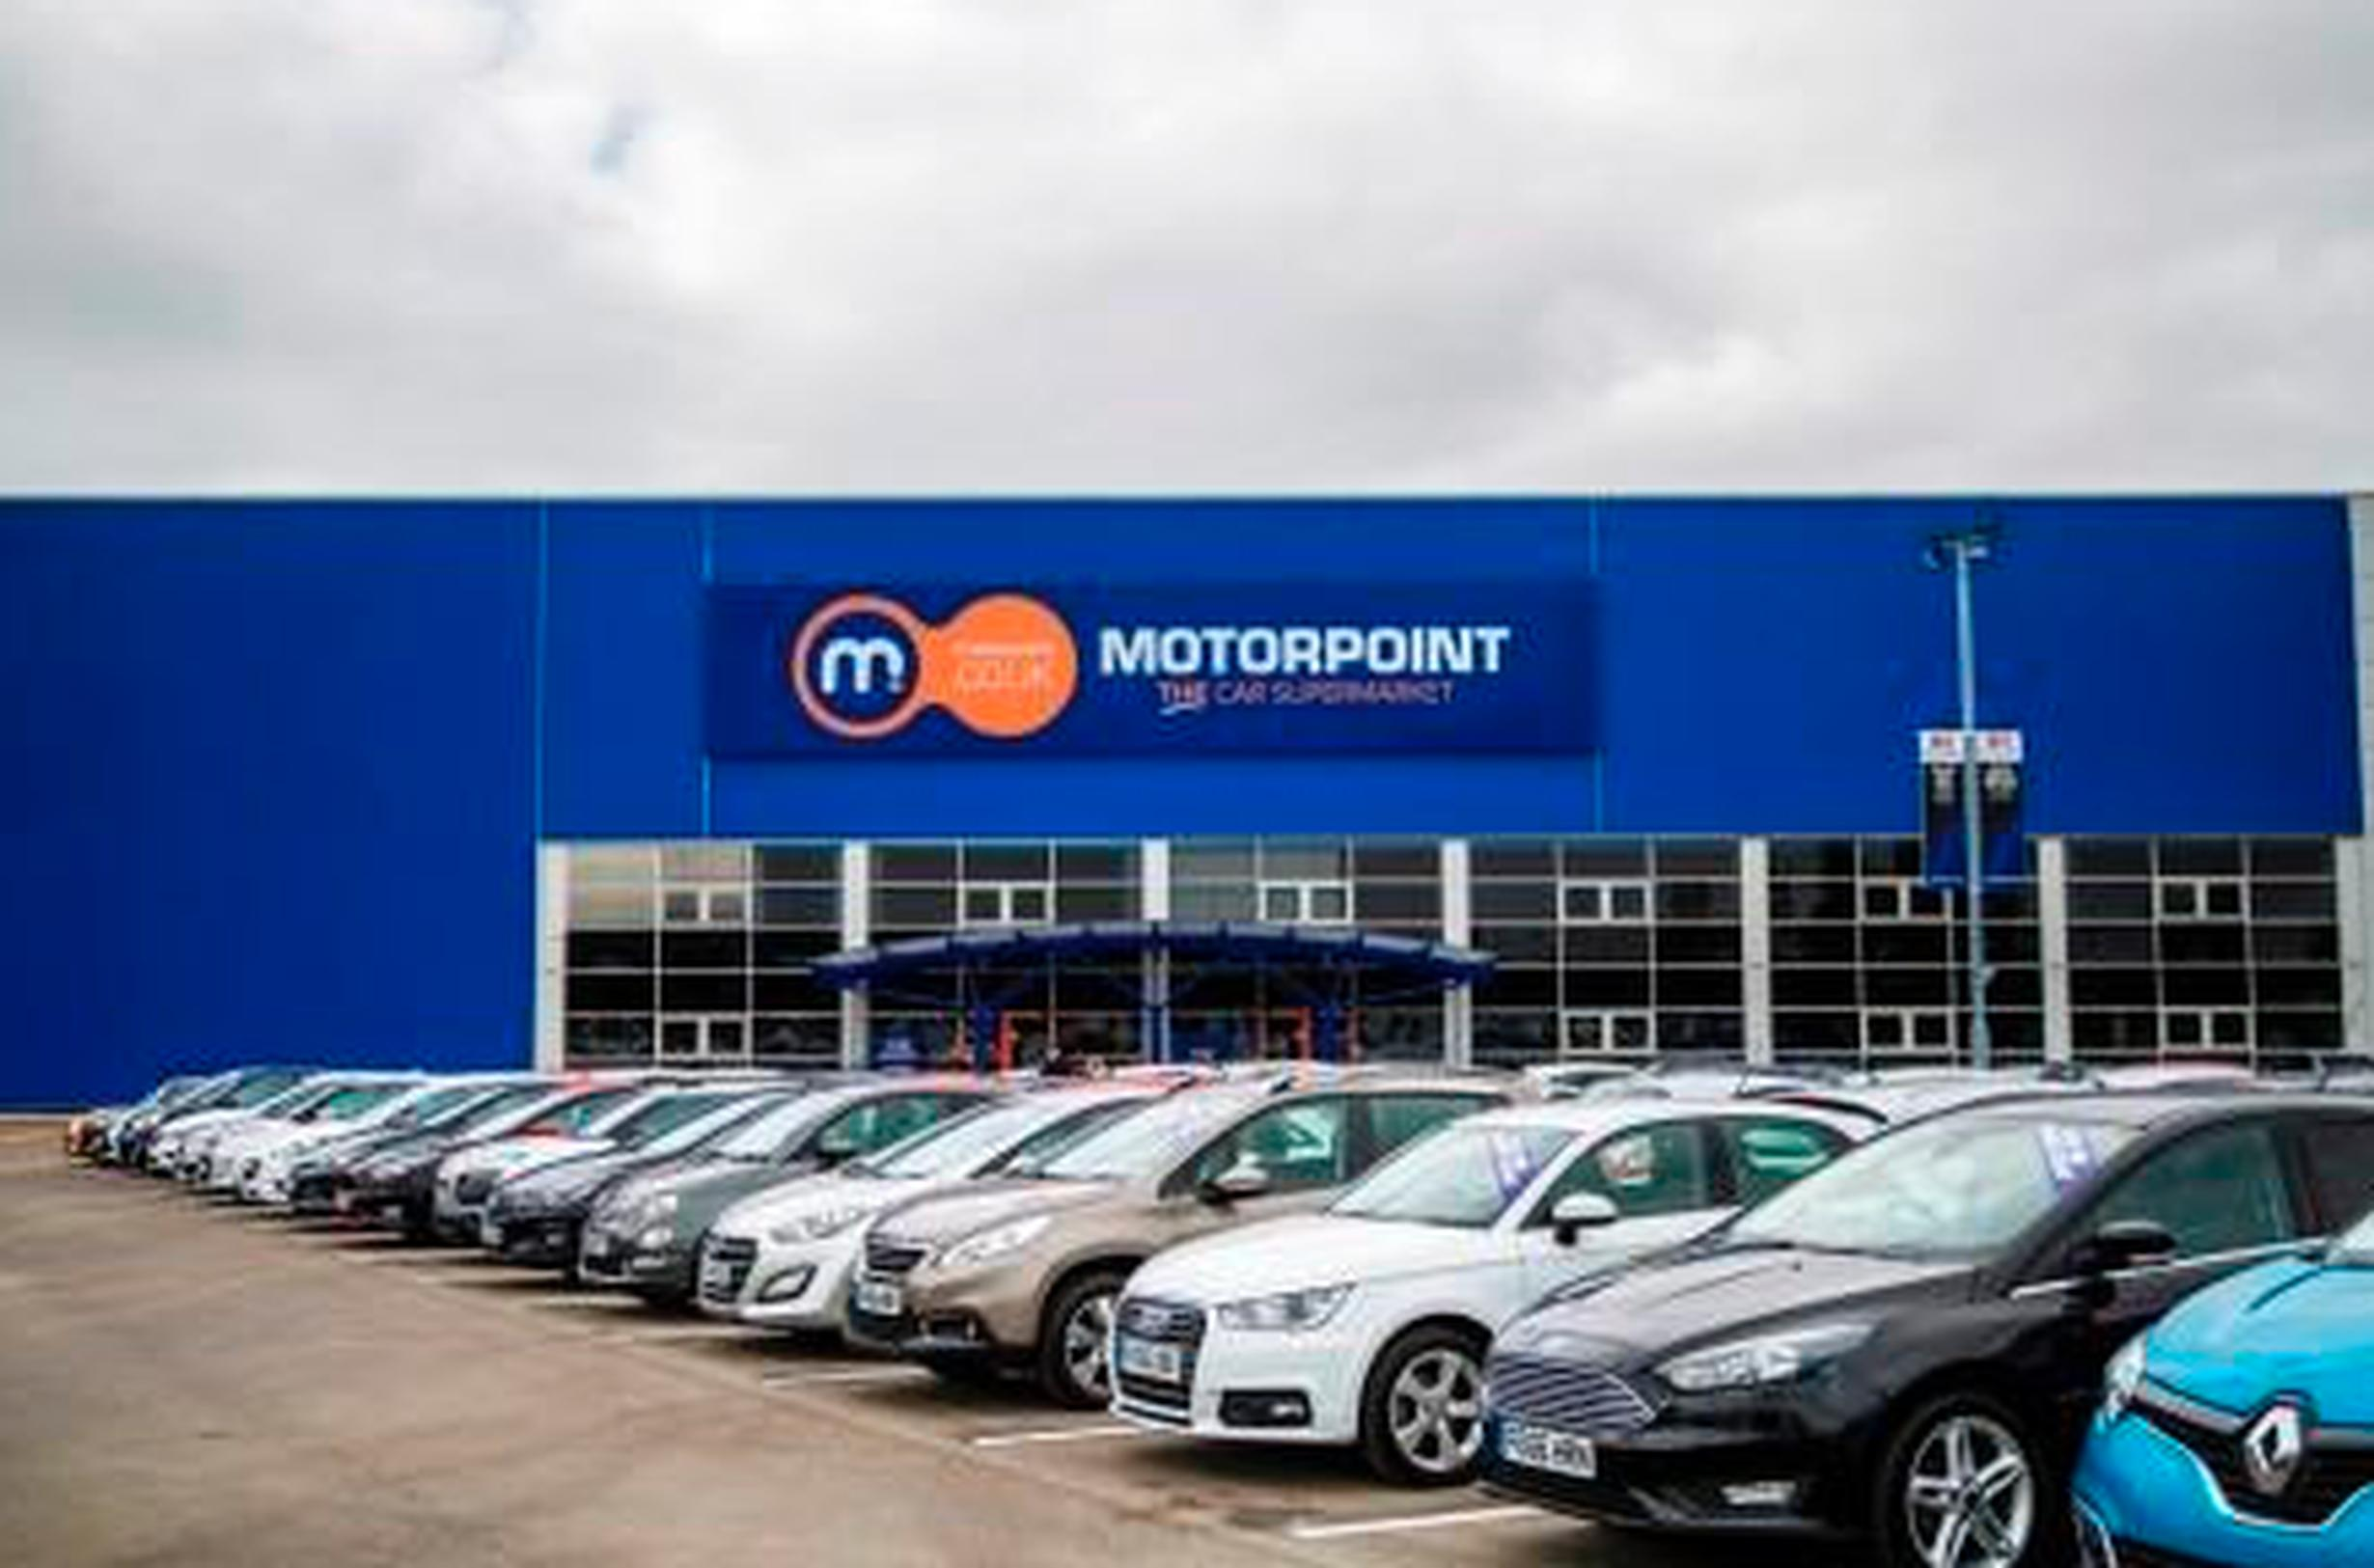 The Motorpoint Charity Parking Scheme at the company's HQ raises £5,000 per annum for one of the company's charitable partners